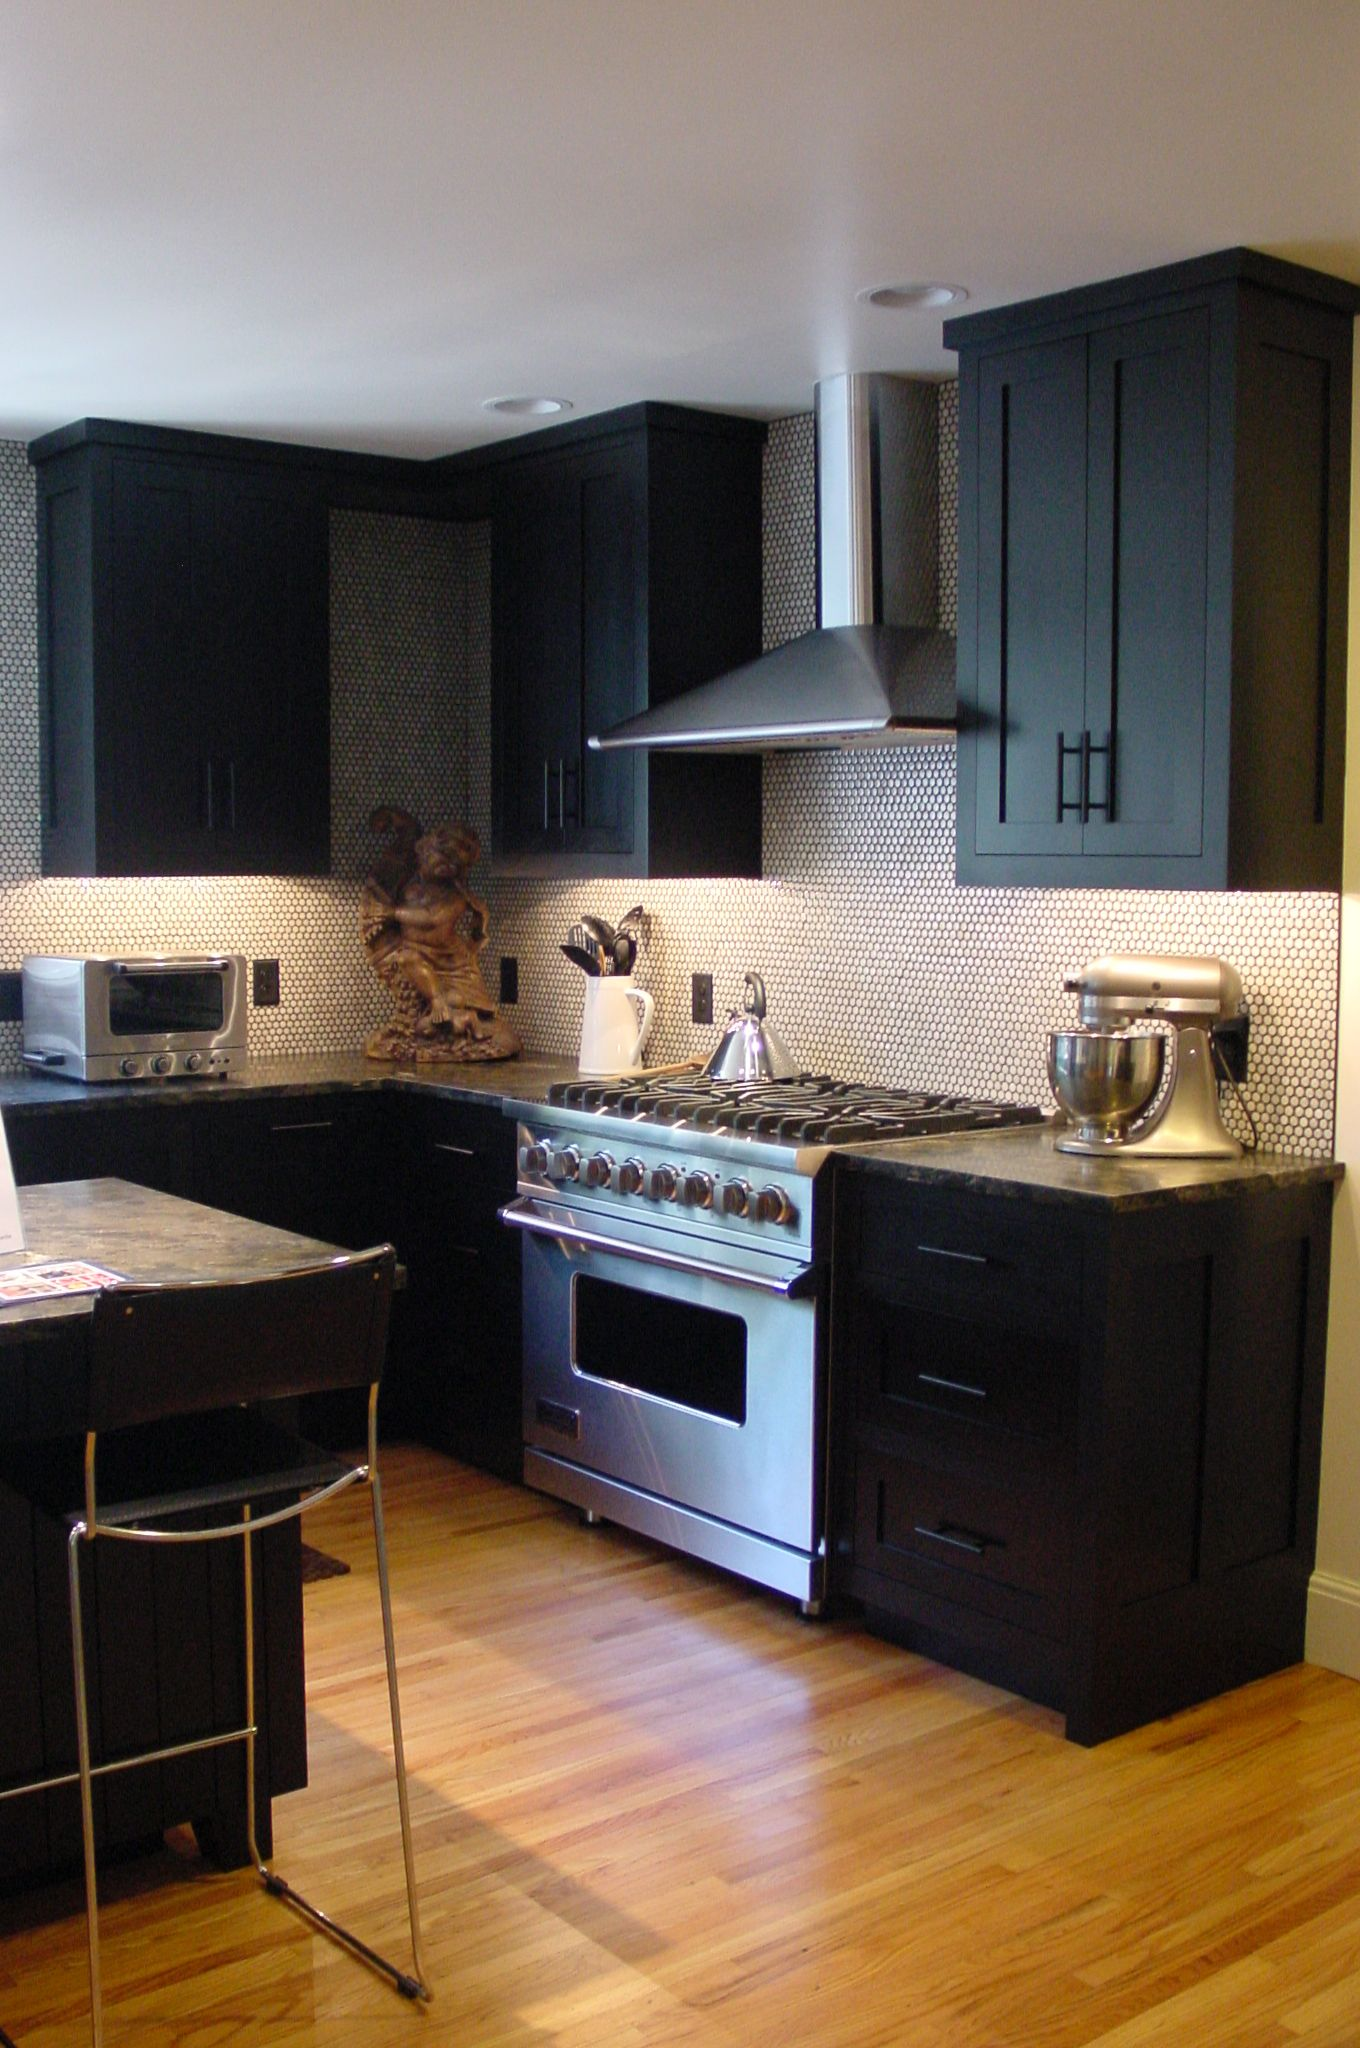 This kitchen uses square inset doors and drawers concealed hinges